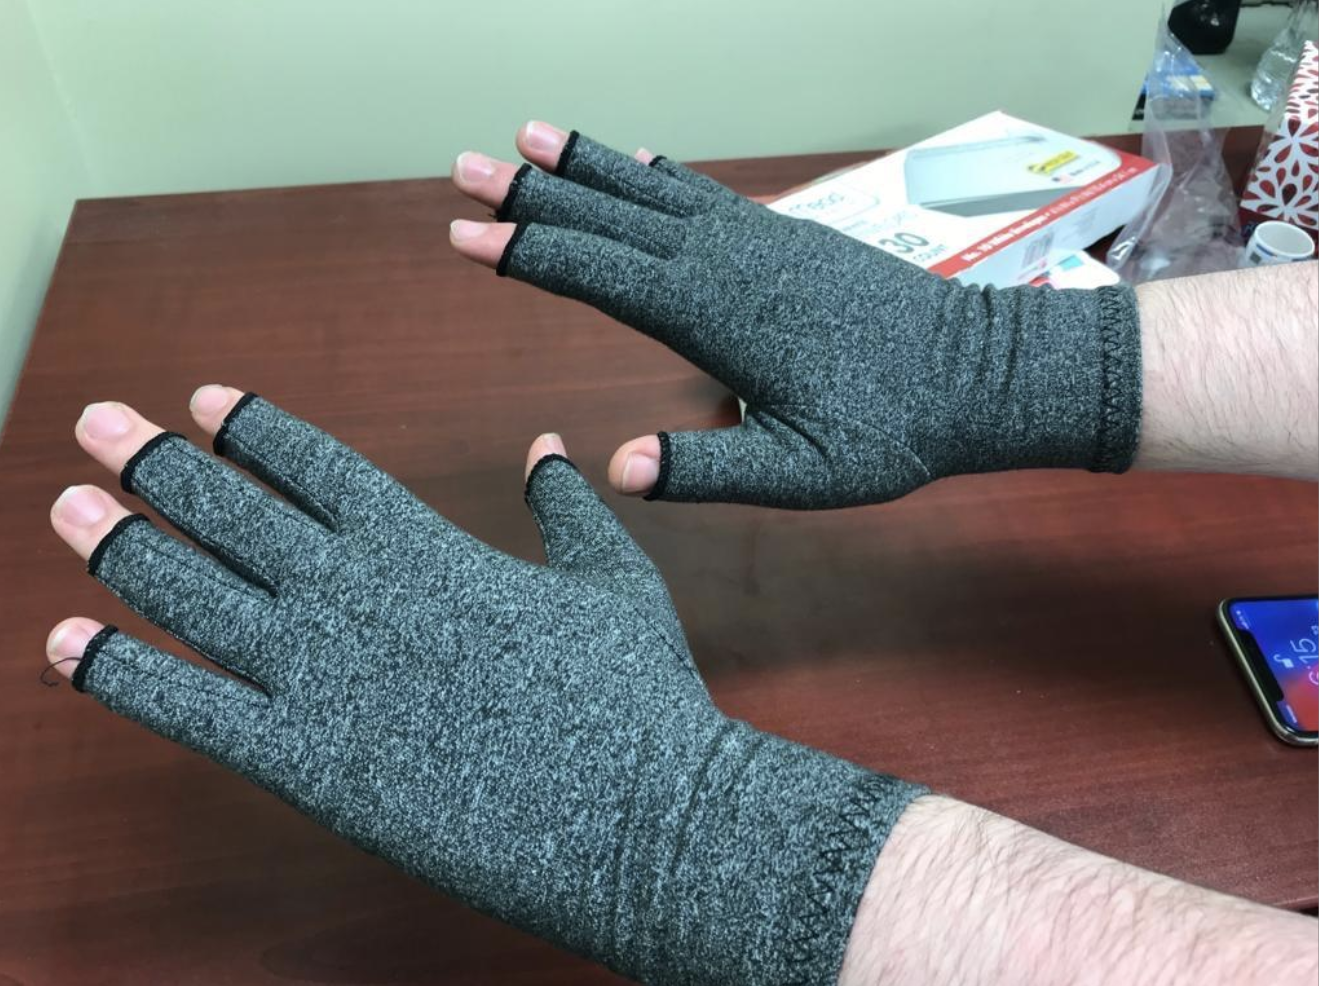 Reviewer with gray fingerless compression gloves on hands